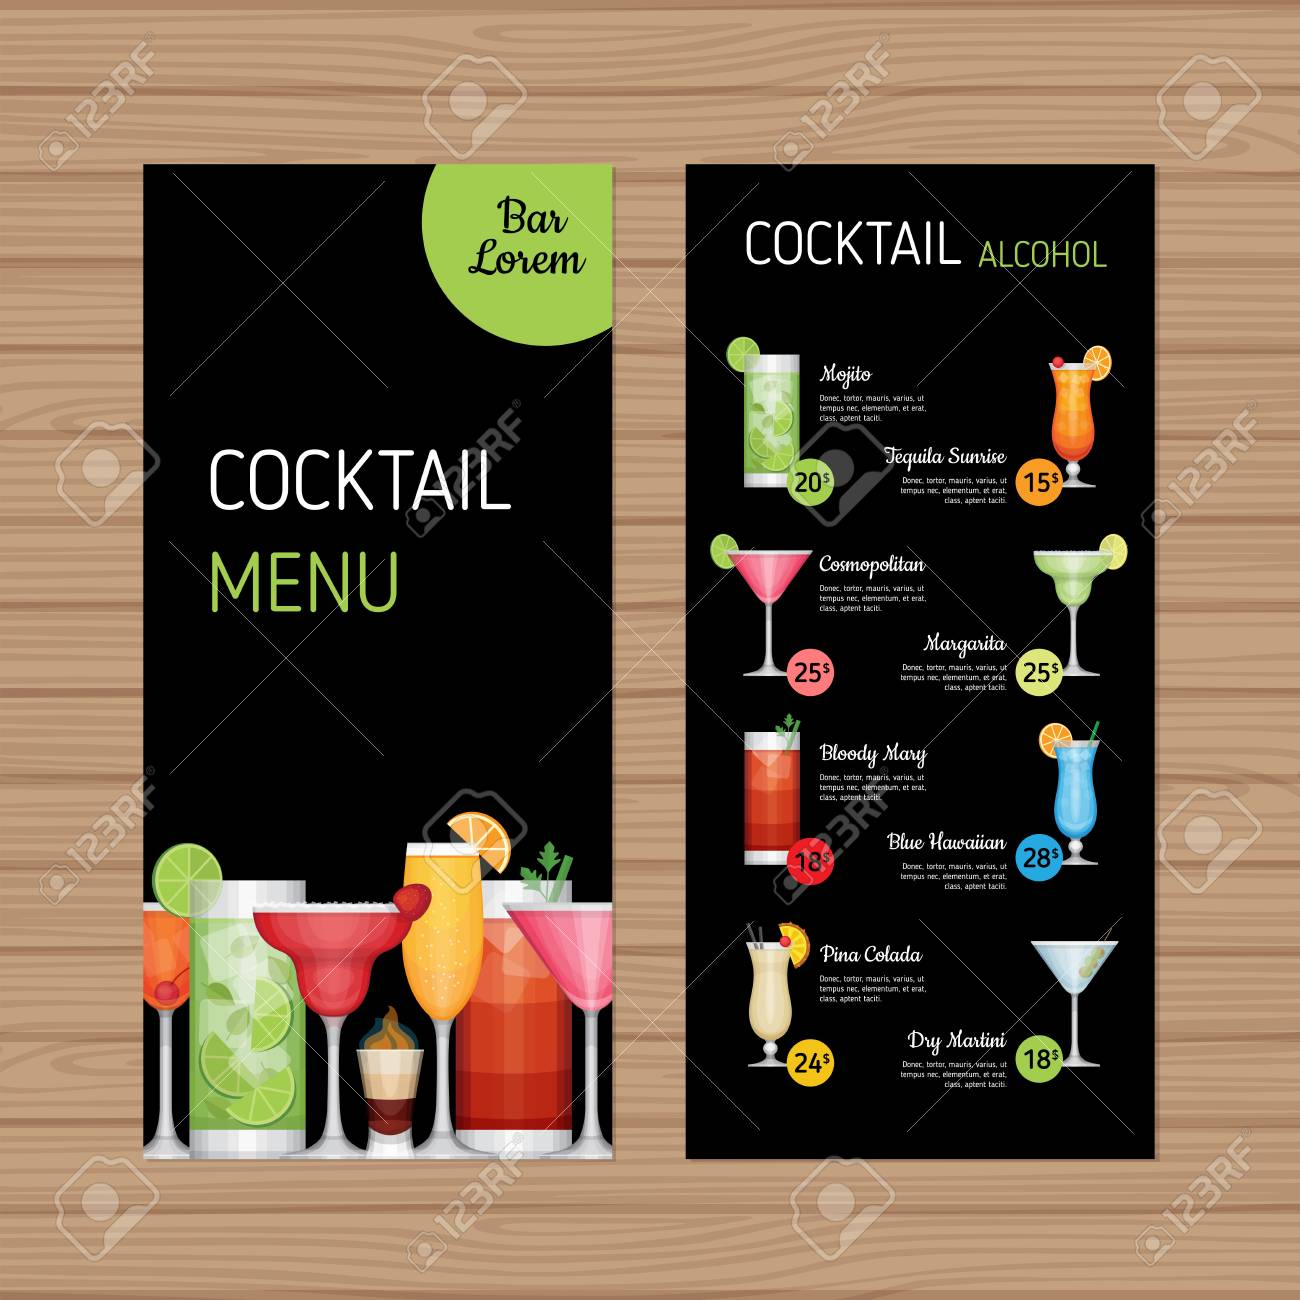 drink menu design. royalty free cliparts, vectors, and stock